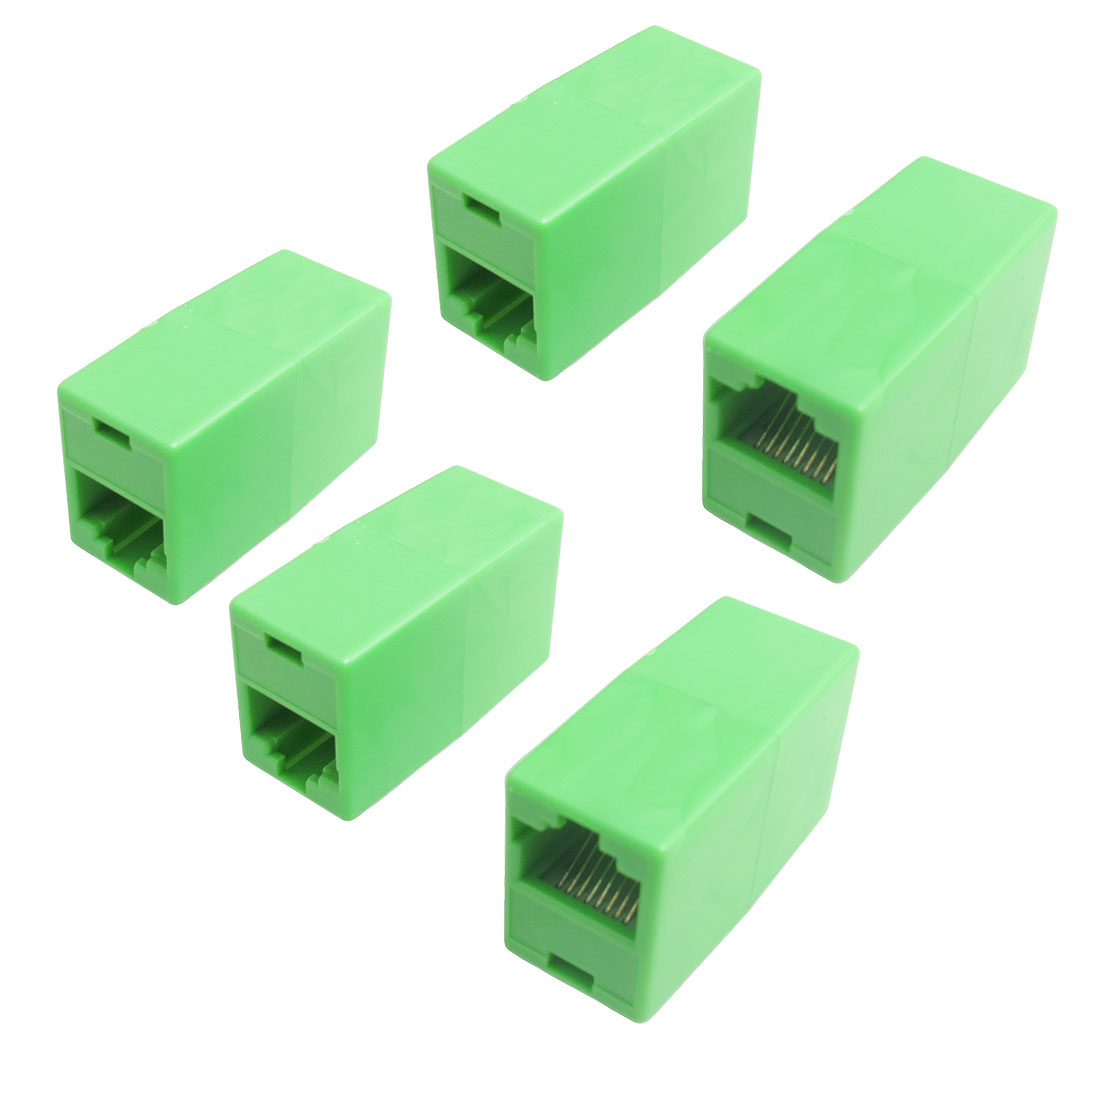 RJ45 Modular Network F/F Inline Coupler Connector 5 Pcs